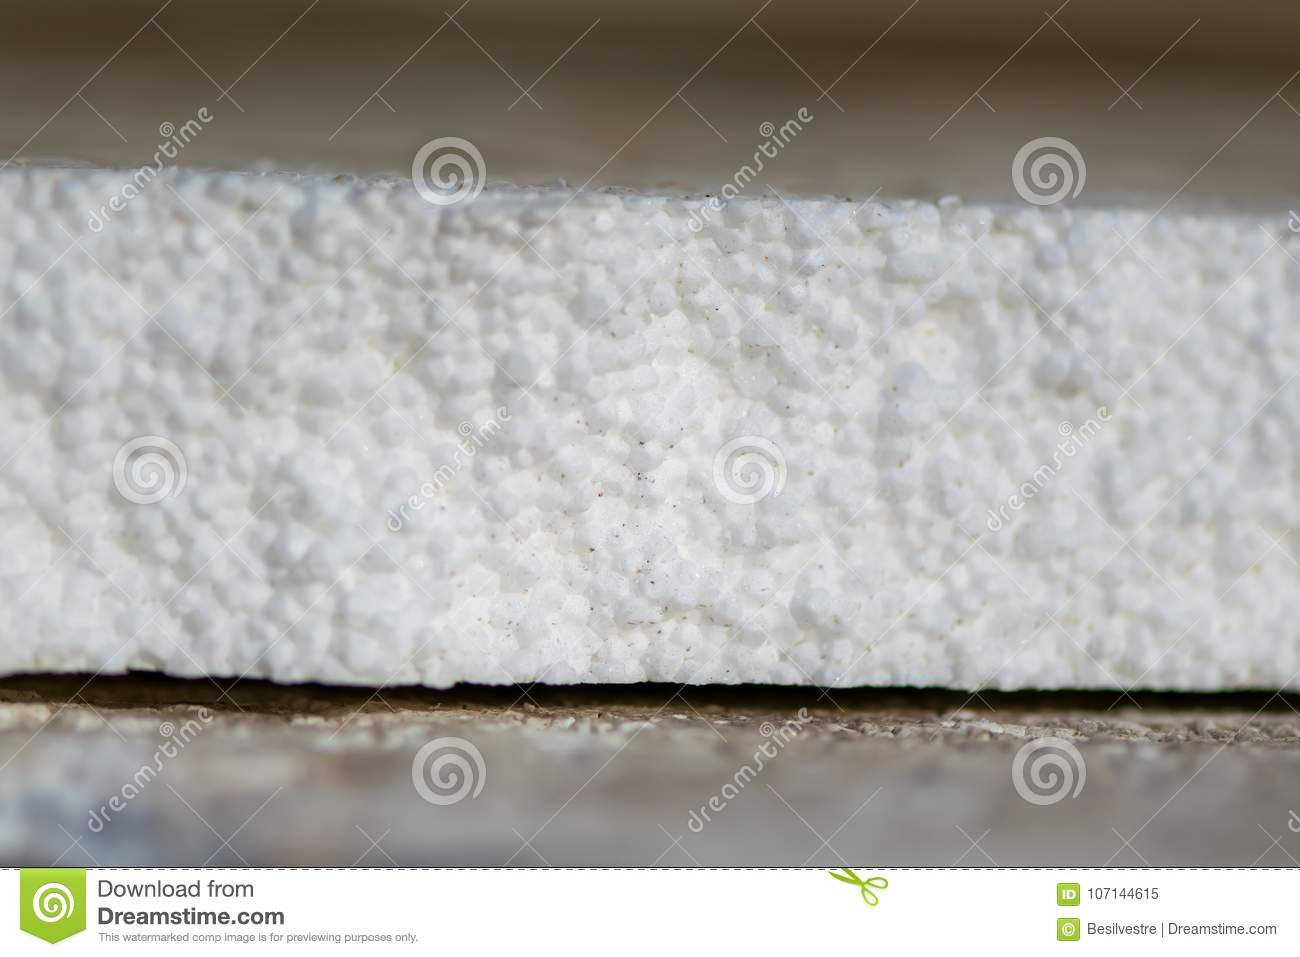 Polystyrene Foam  White Background  Stock Image - Image of pile